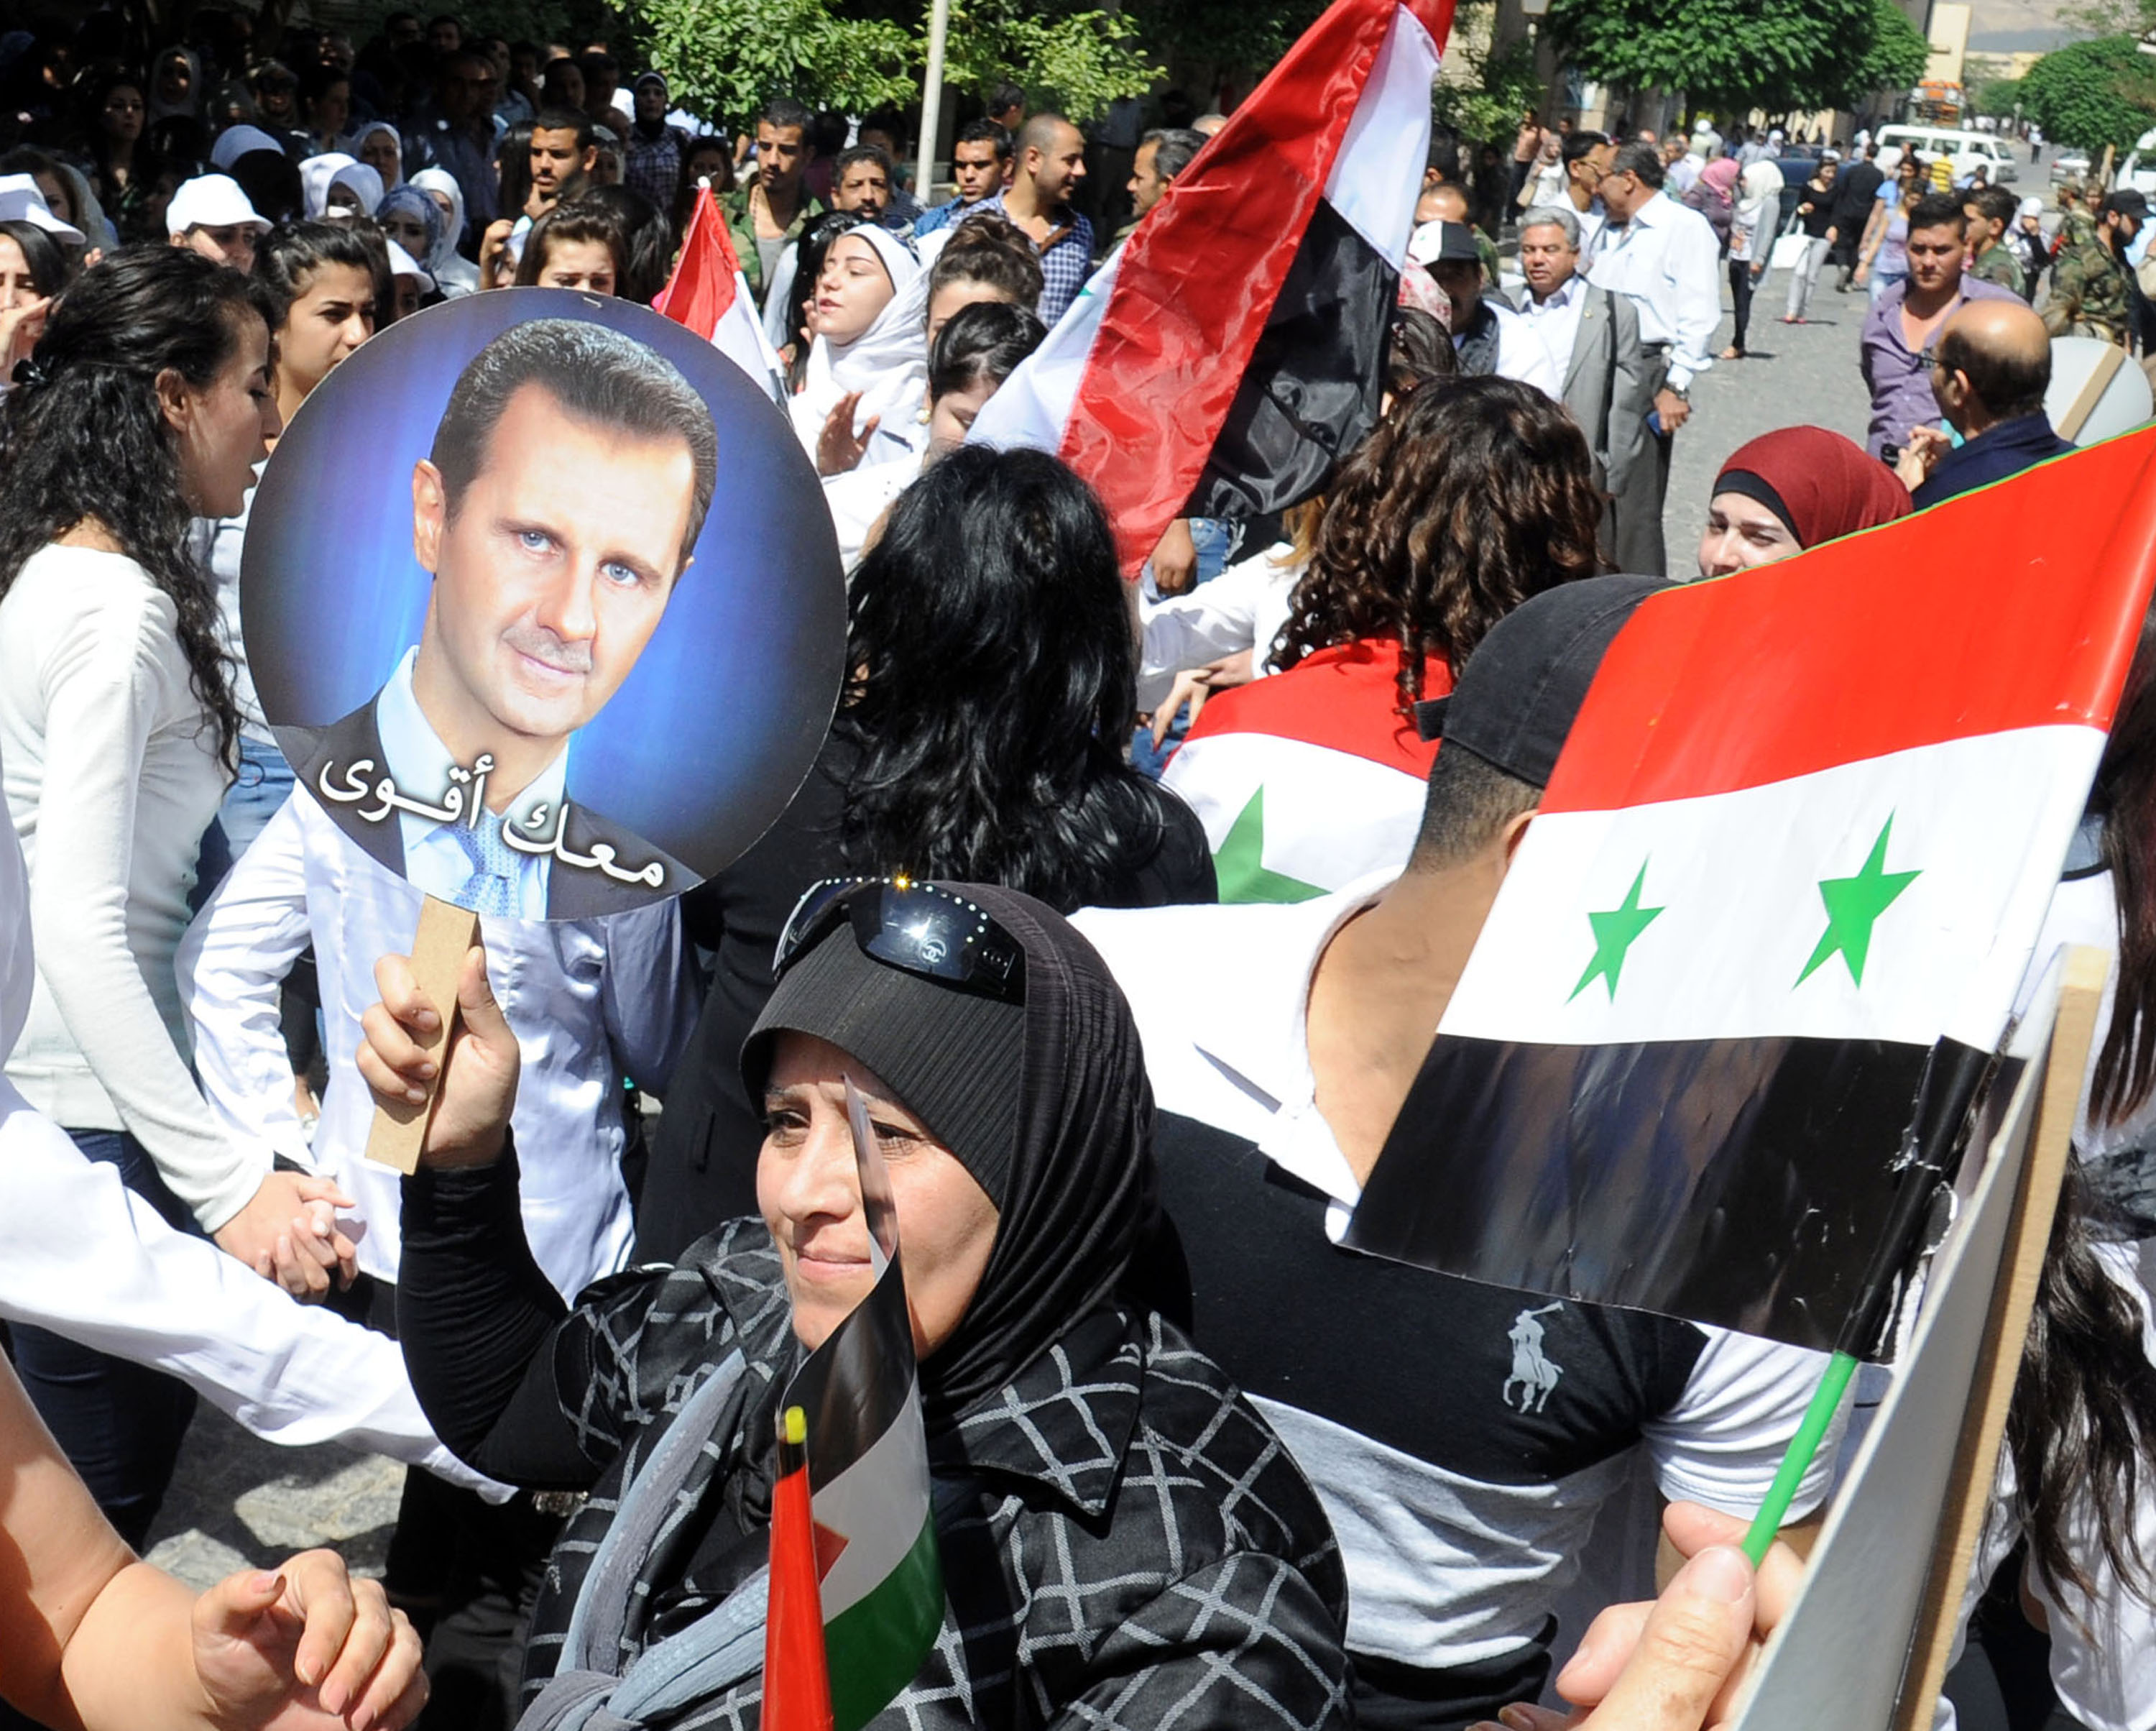 SYRIA-DAMASCUS-ASSAD-SUPPORTERS-RALLY